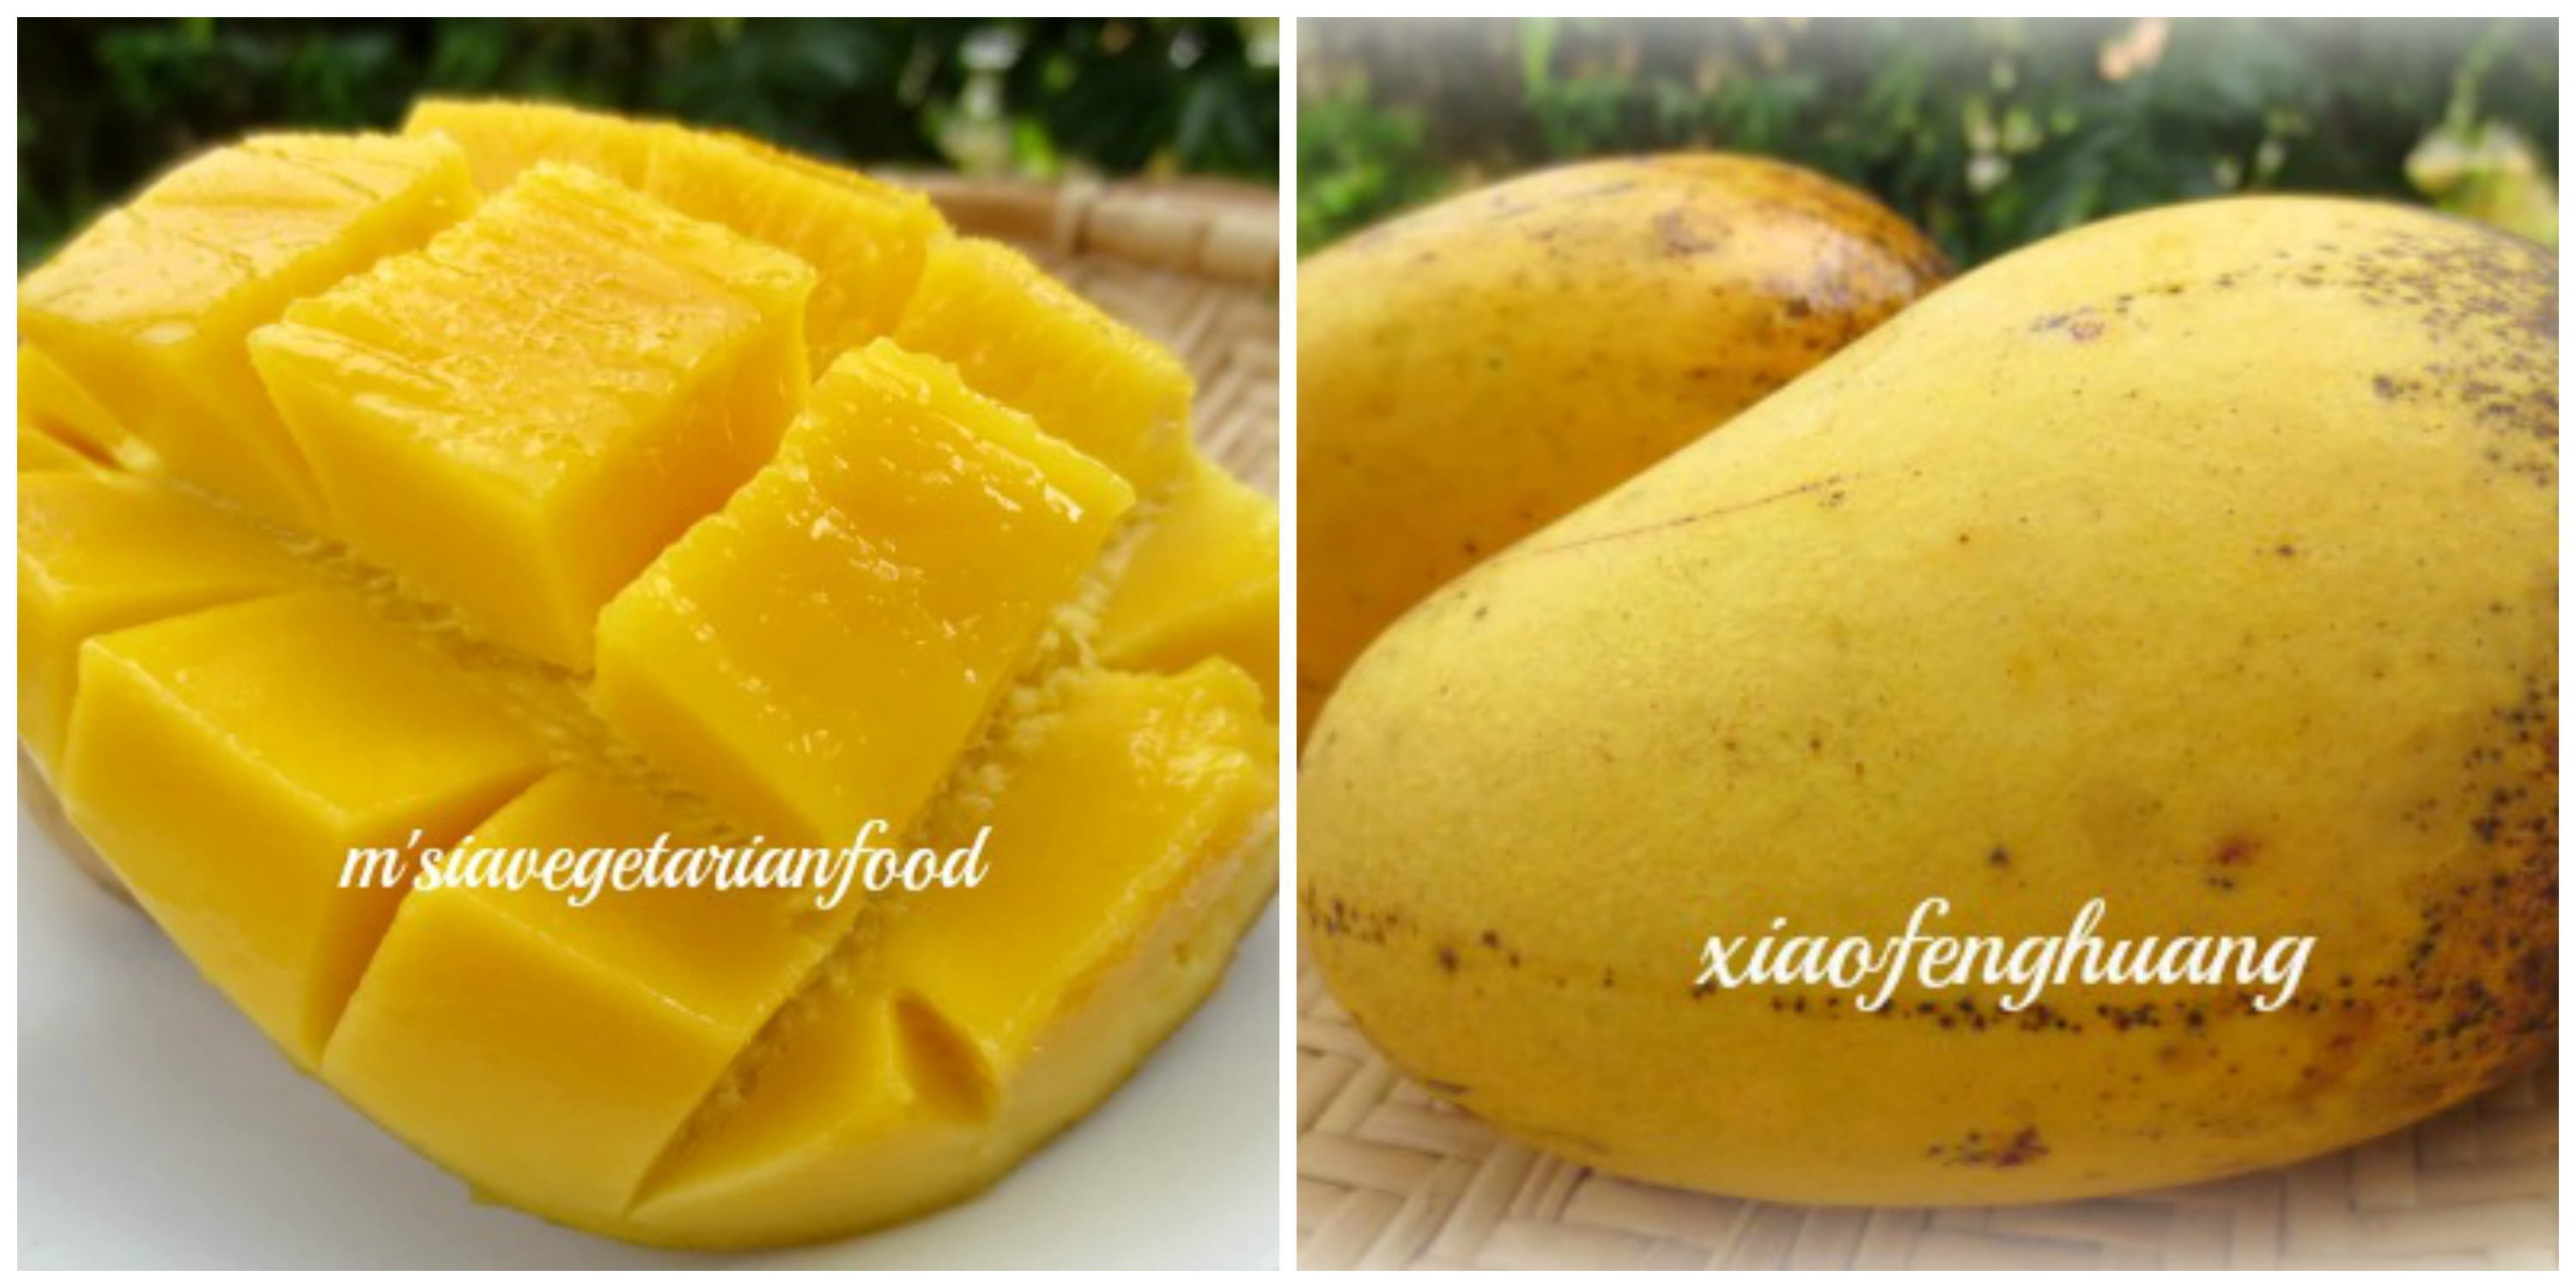 Home grown mangoes